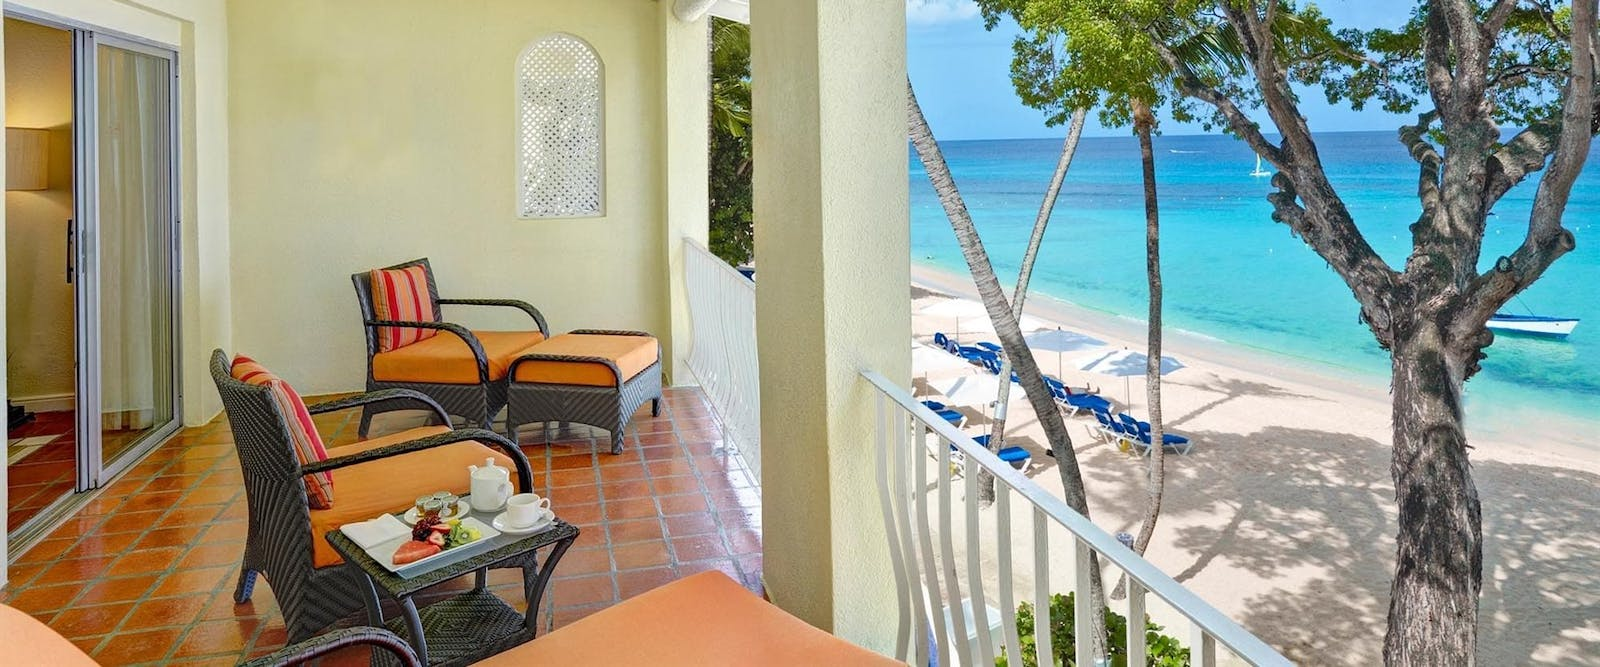 One Bedroom Suite Ocean Front at Tamarind by Elegant Hotels, Barbados